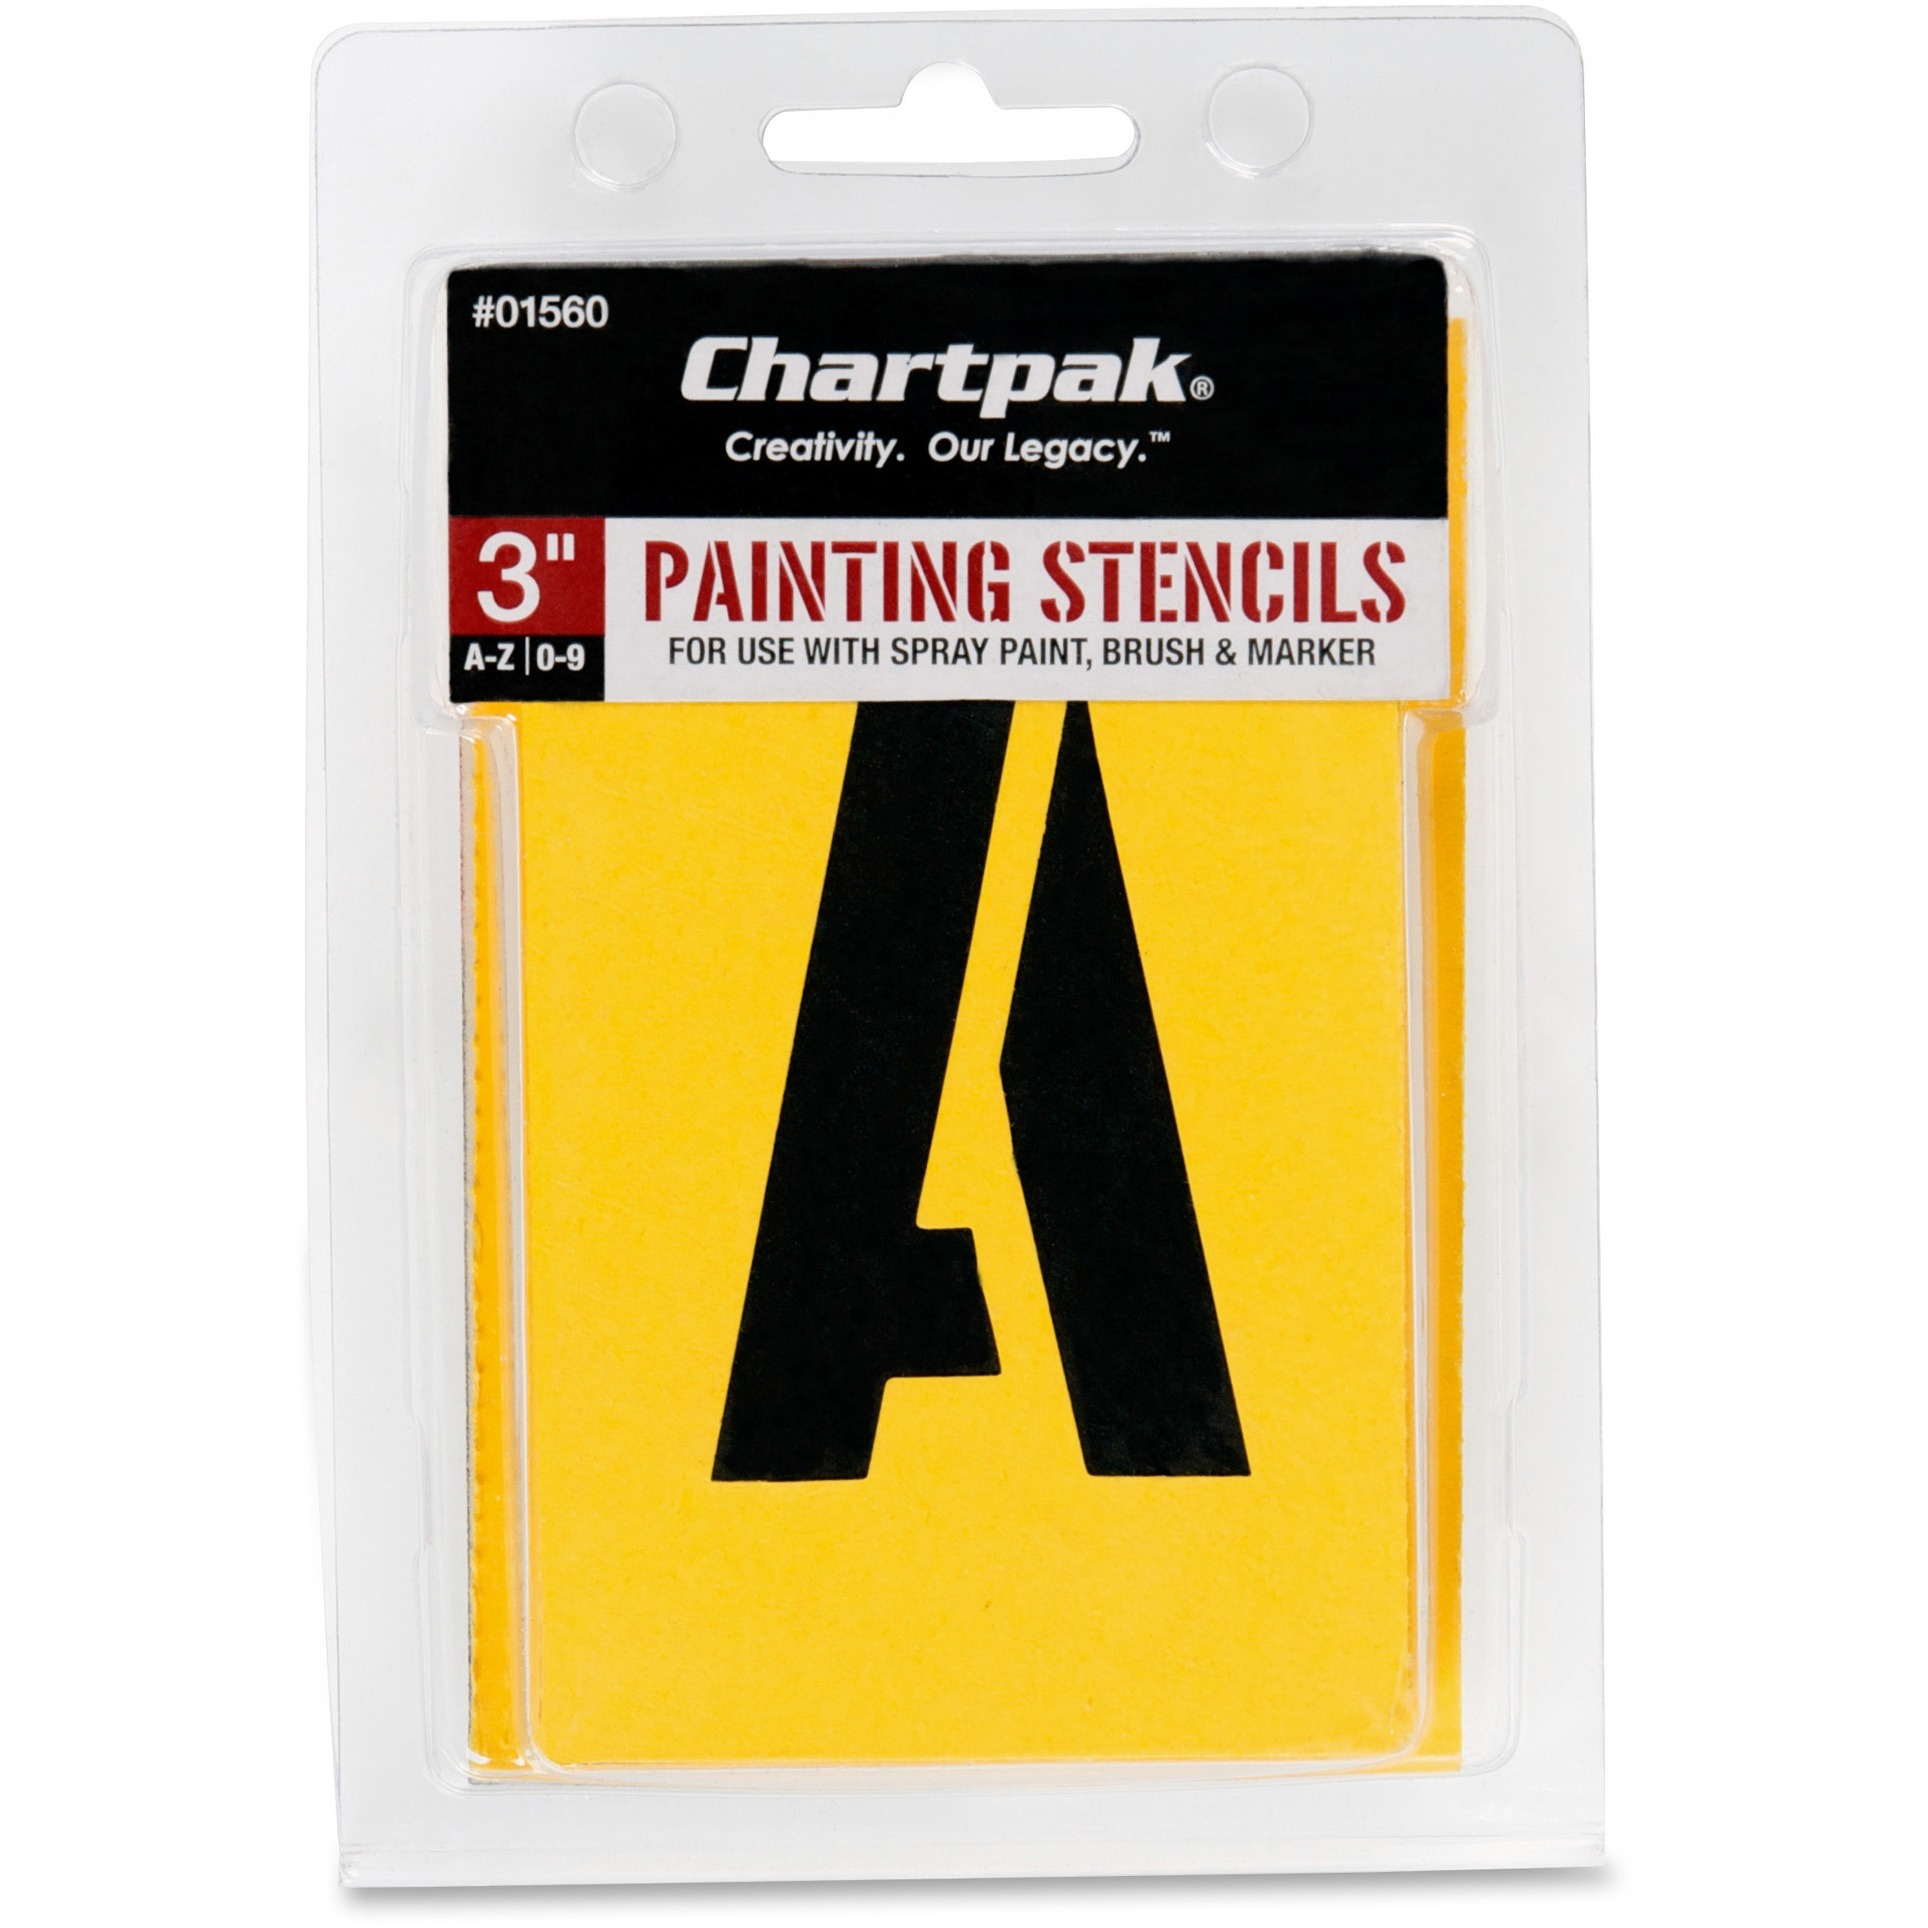 Chartpak, CHA01560, Painting Letters/Numbers Stencils, 35 / Set, Yellow